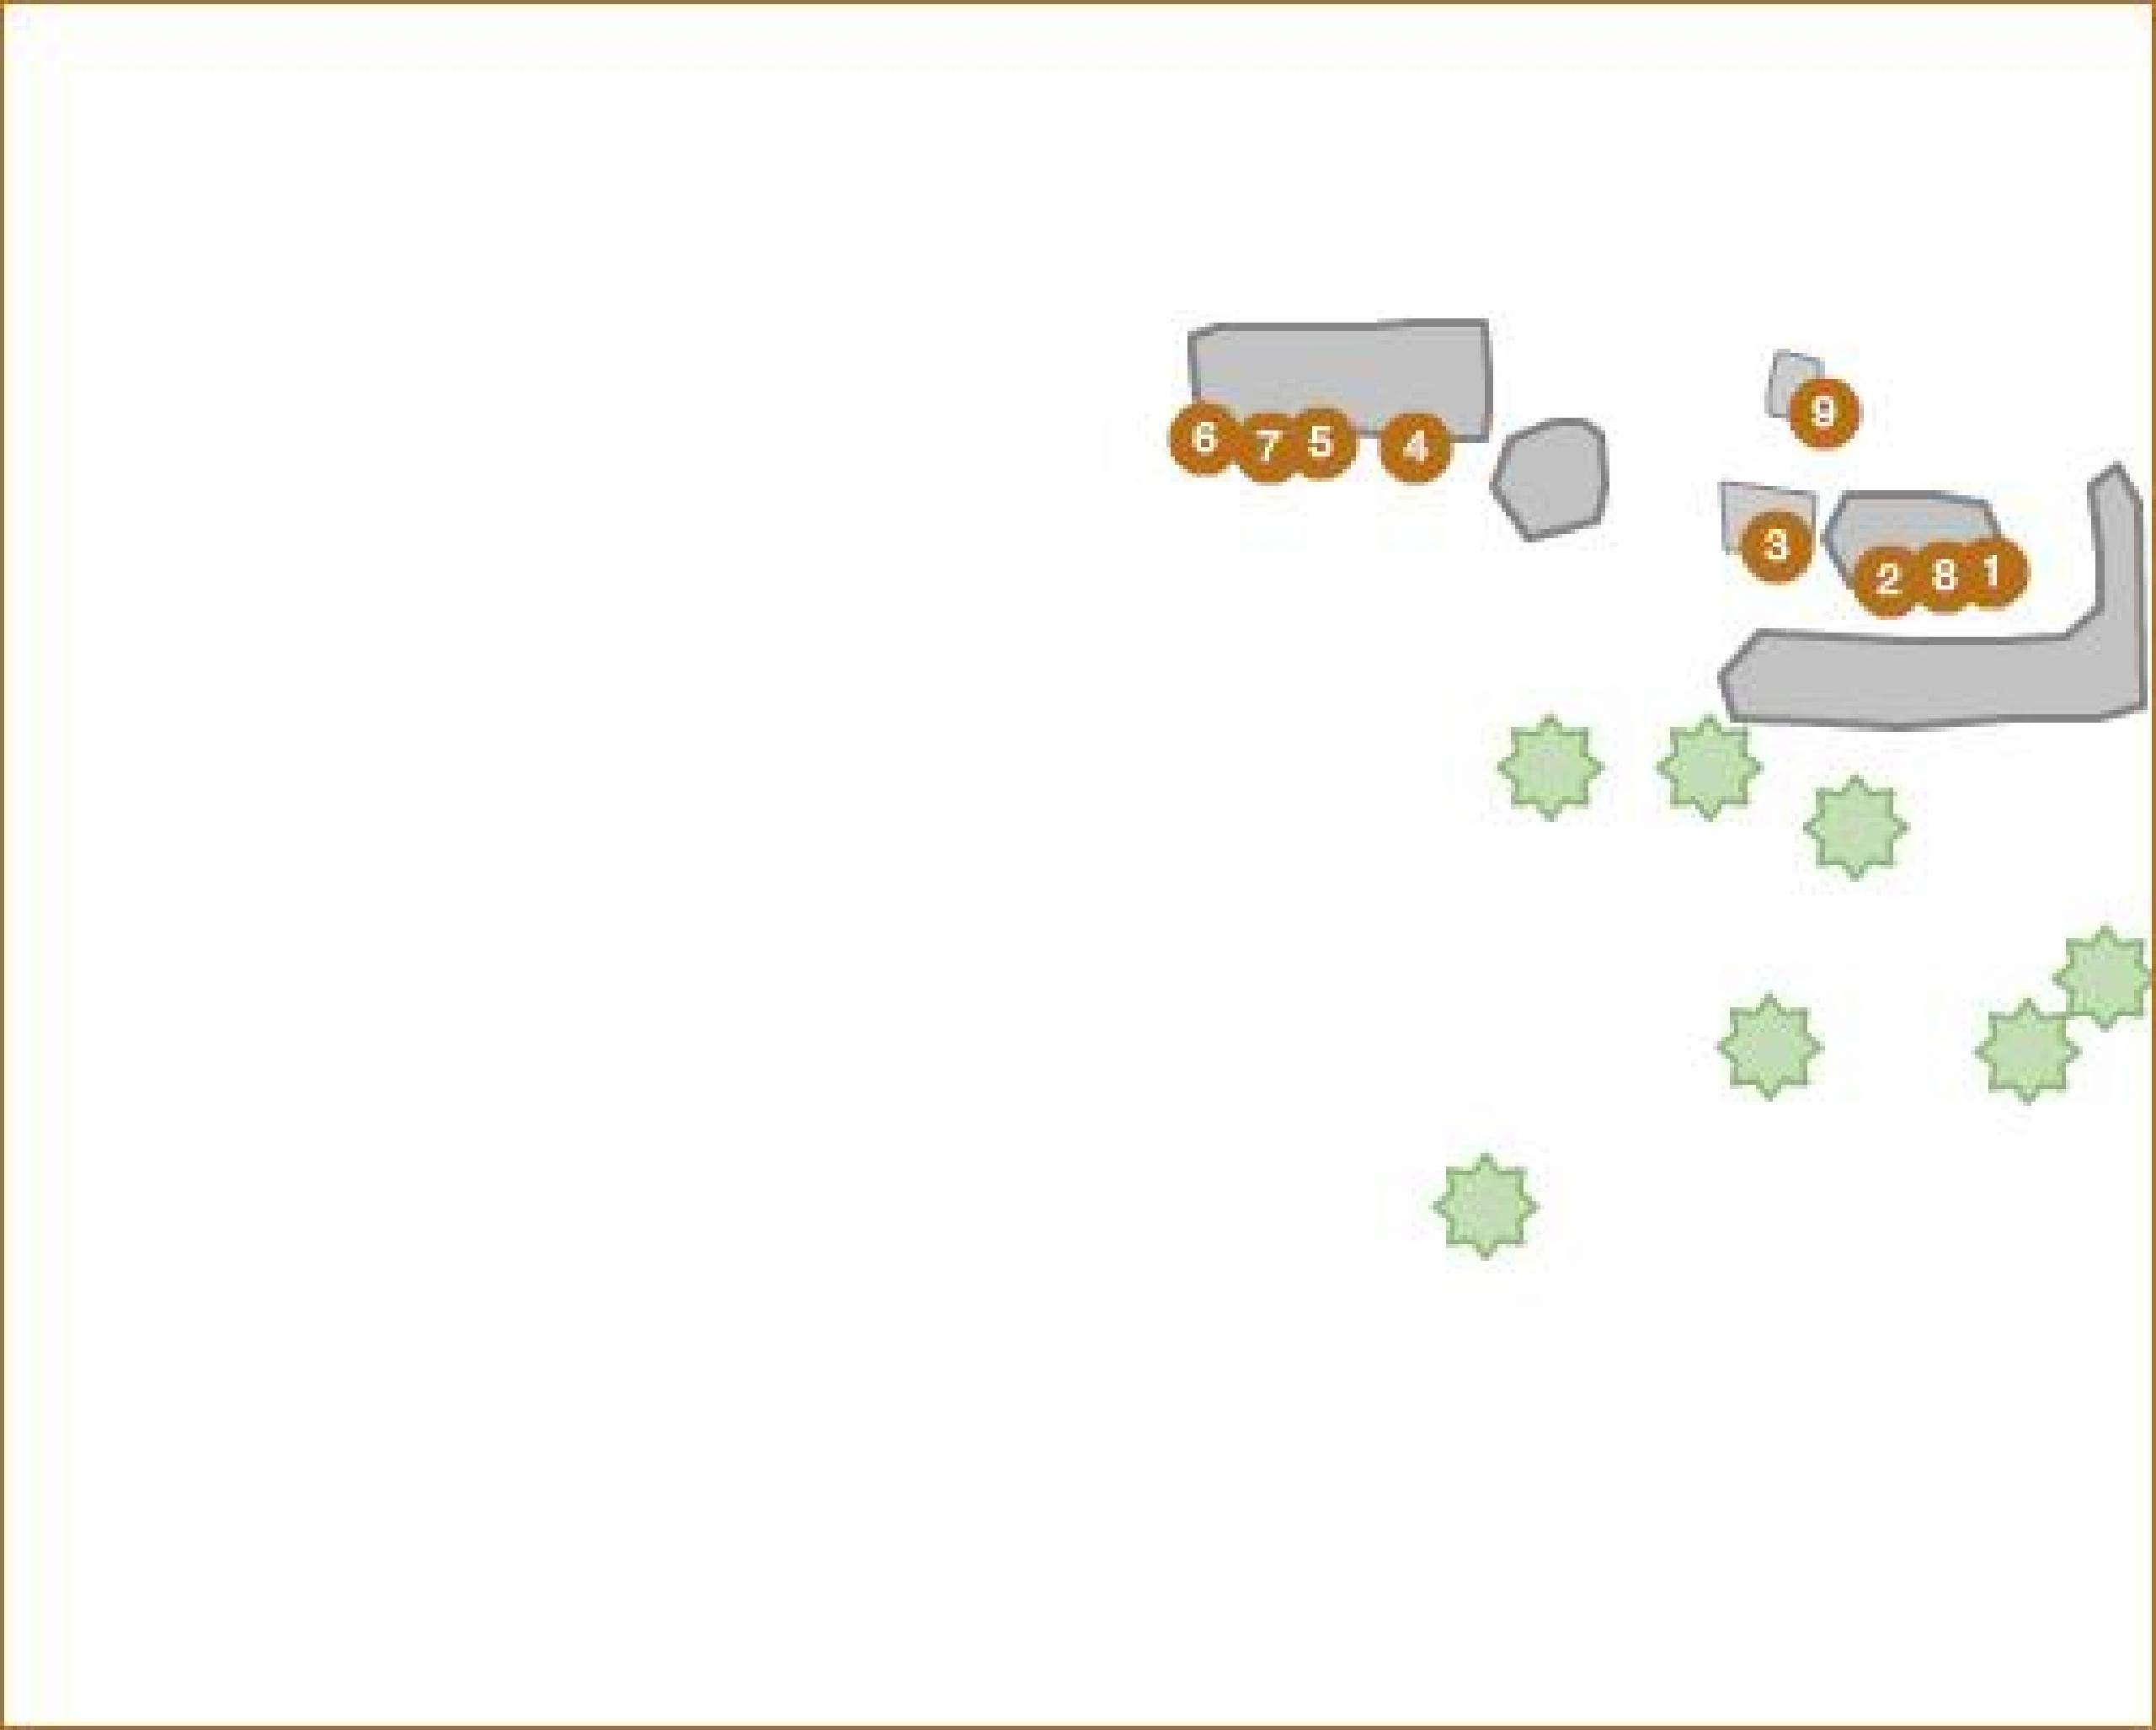 photographer: Unknown